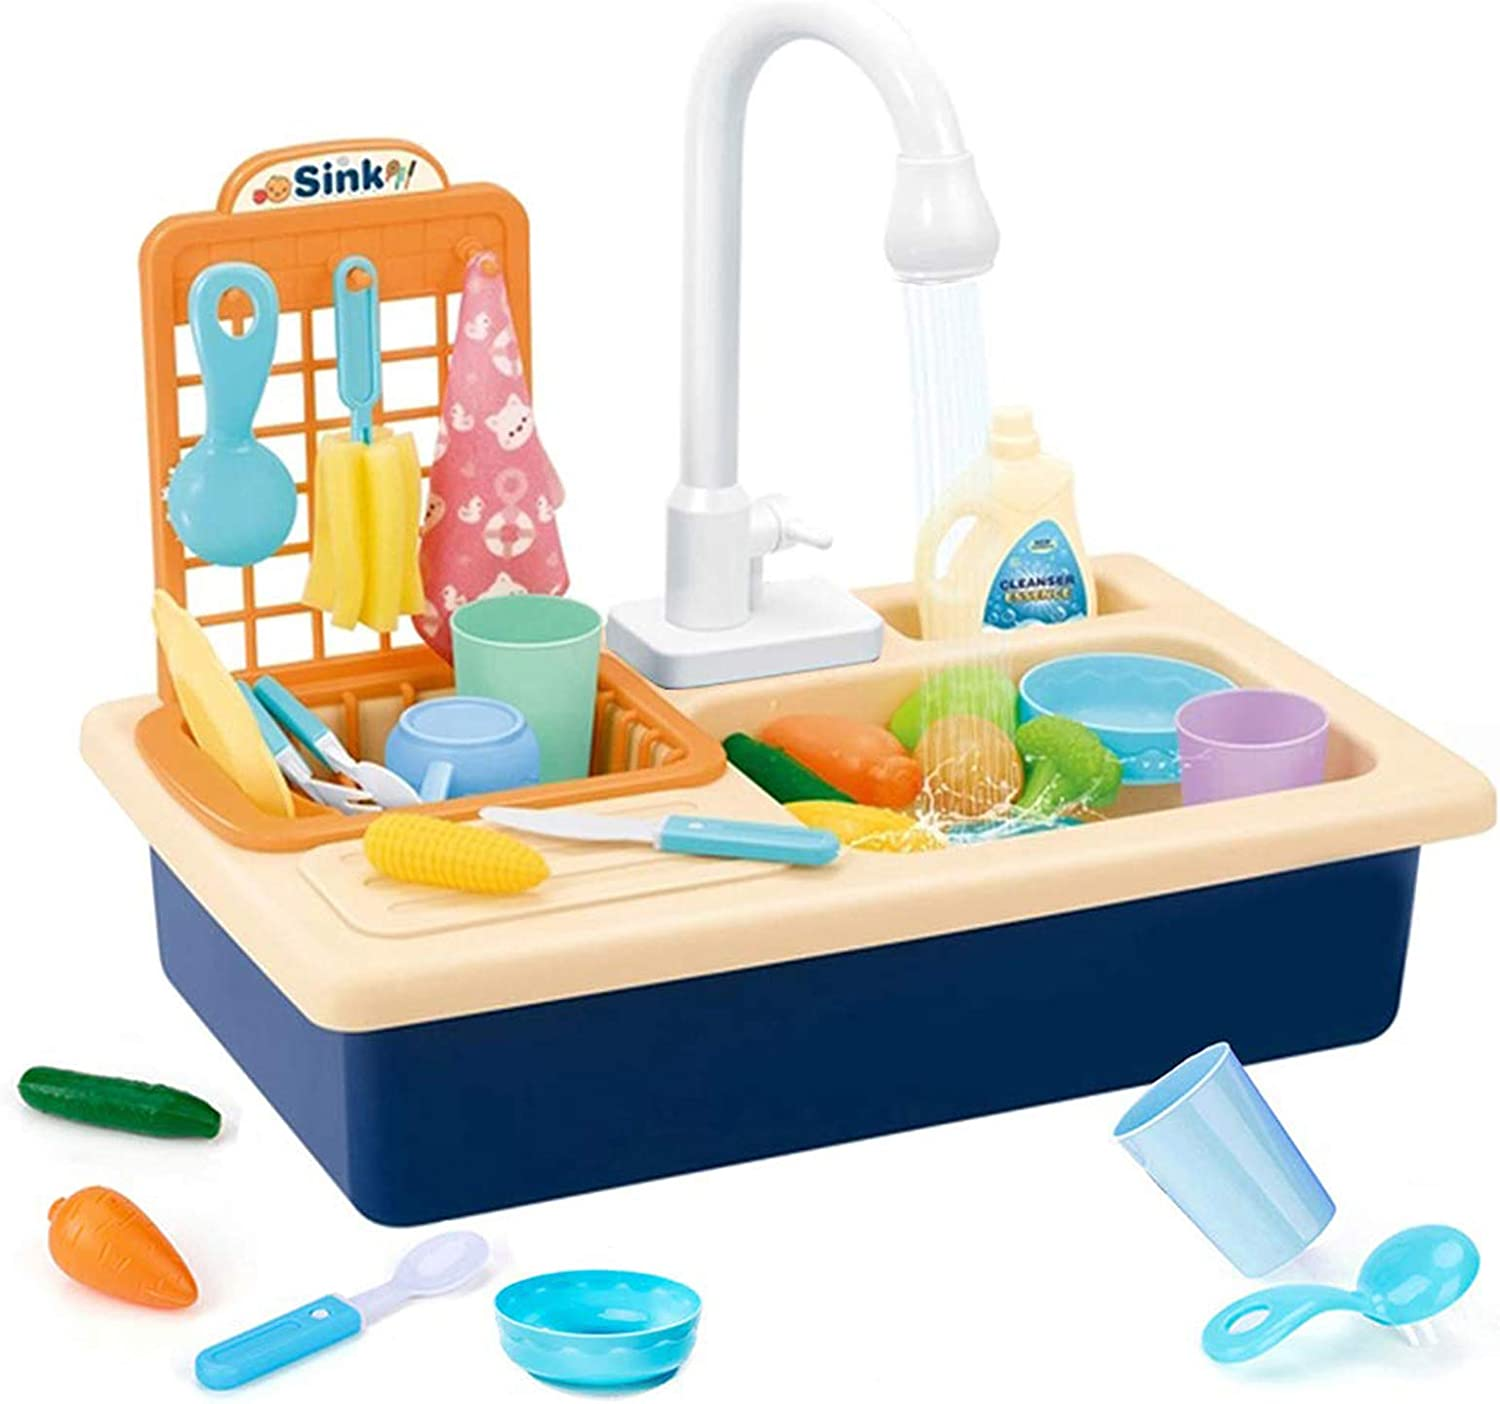 Amazon Com Play Kitchen Sink Toy With Running Water Pretend Role Play Automatic Water Cycle System Realistic Light And Sound Dish Rack And Tableware Food Accessories Dish Sink Toy For Toddlers Kids Blue Toys